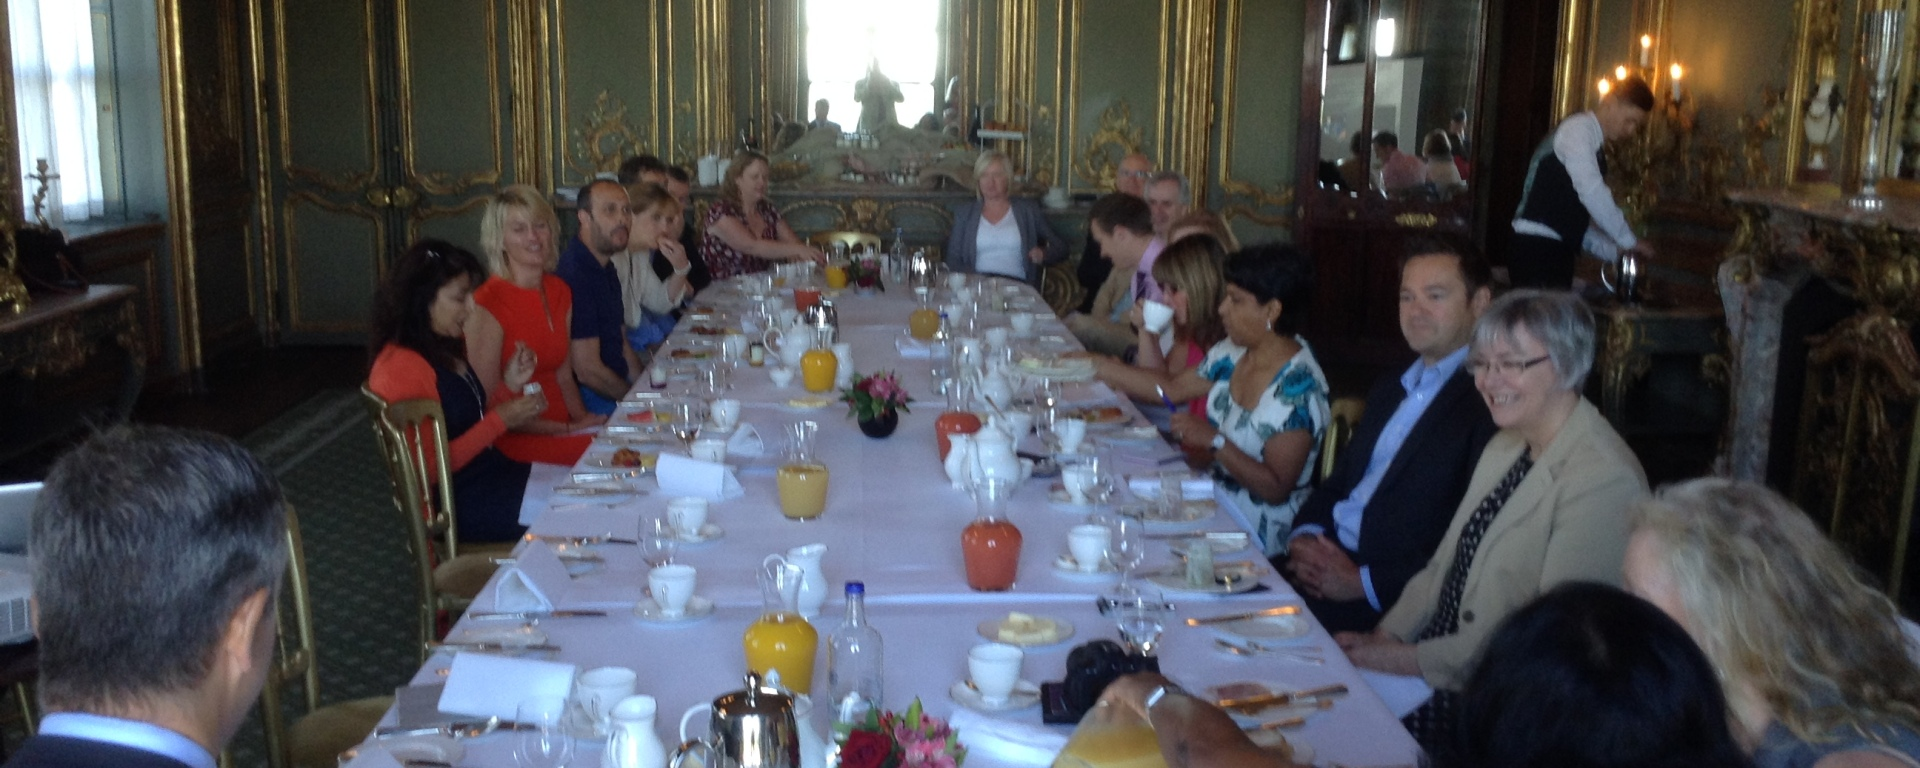 Cliveden House breakfast networking